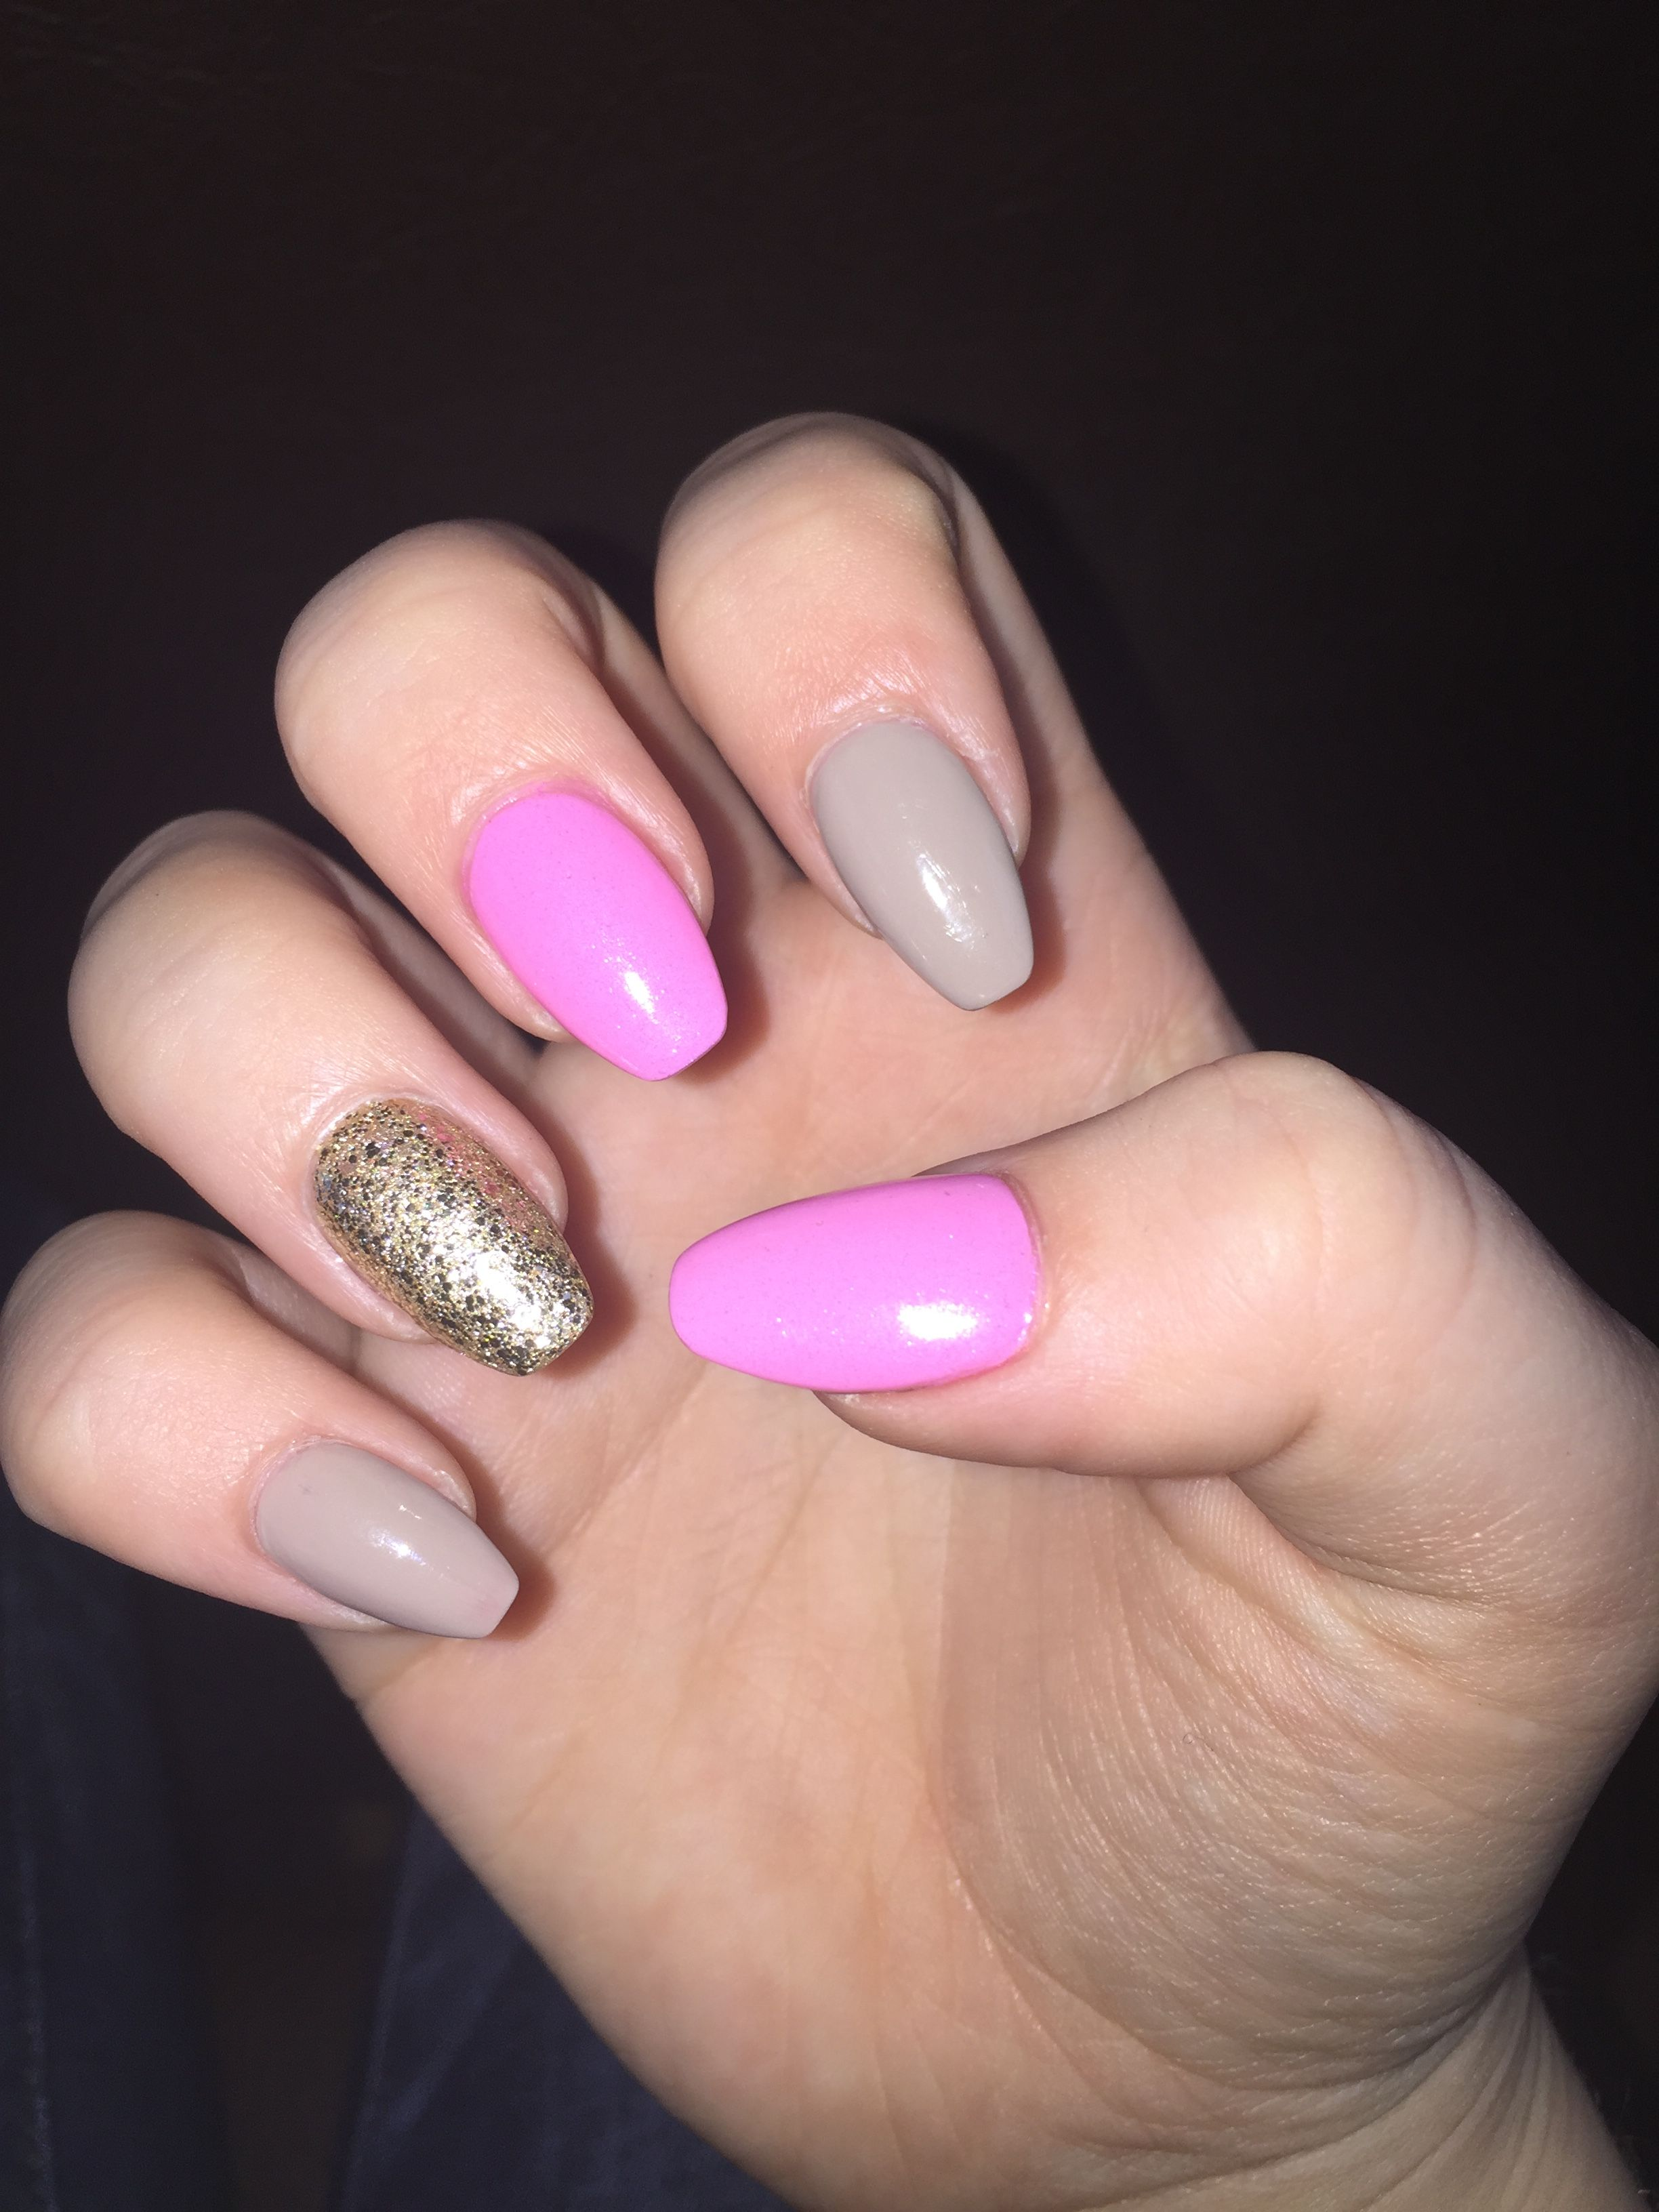 Coffin nails image by leah furkins on Nails | Nails, Coffin